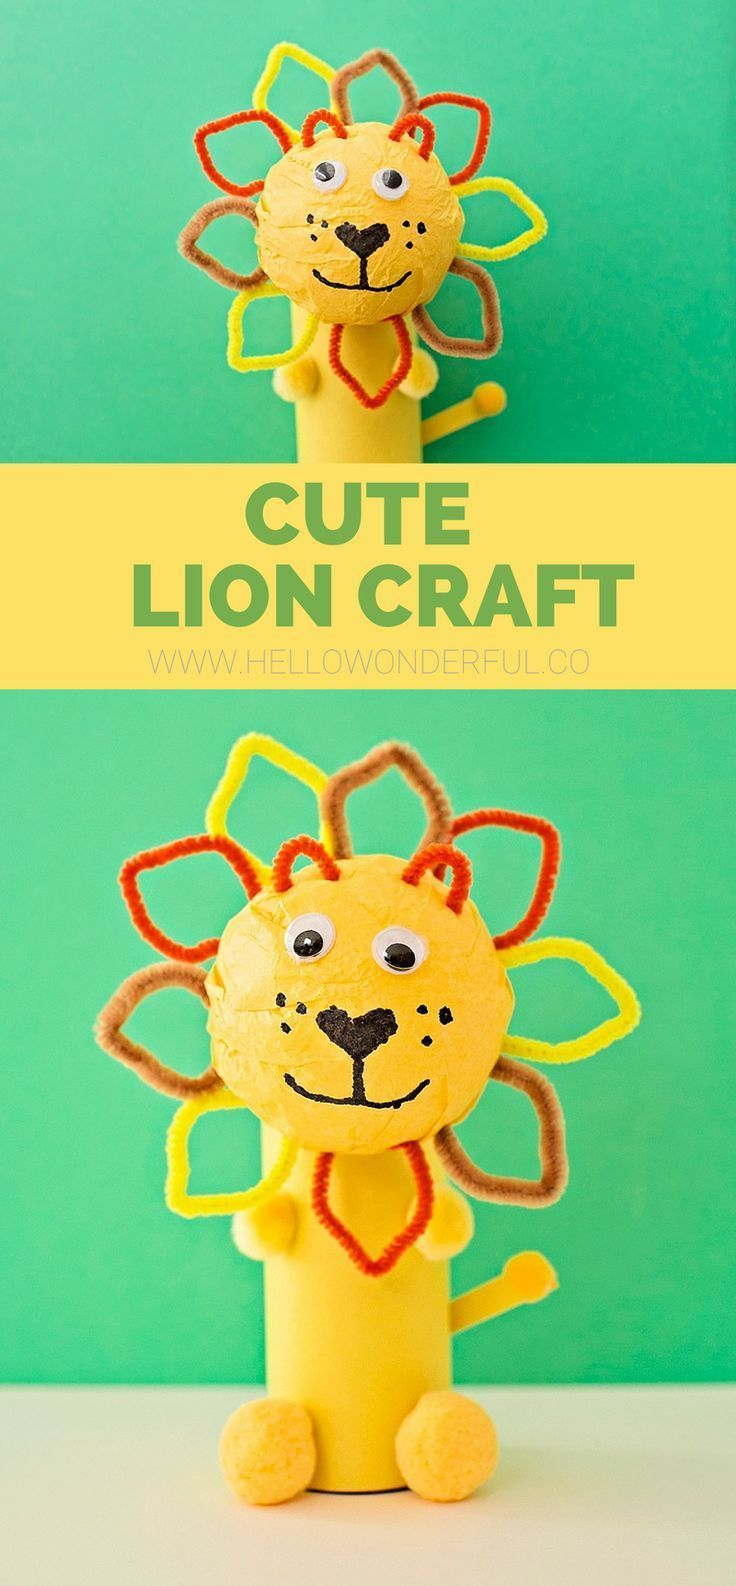 Cute Paper Tube Lion Craft Crafts Pinterest Crafts Crafts For